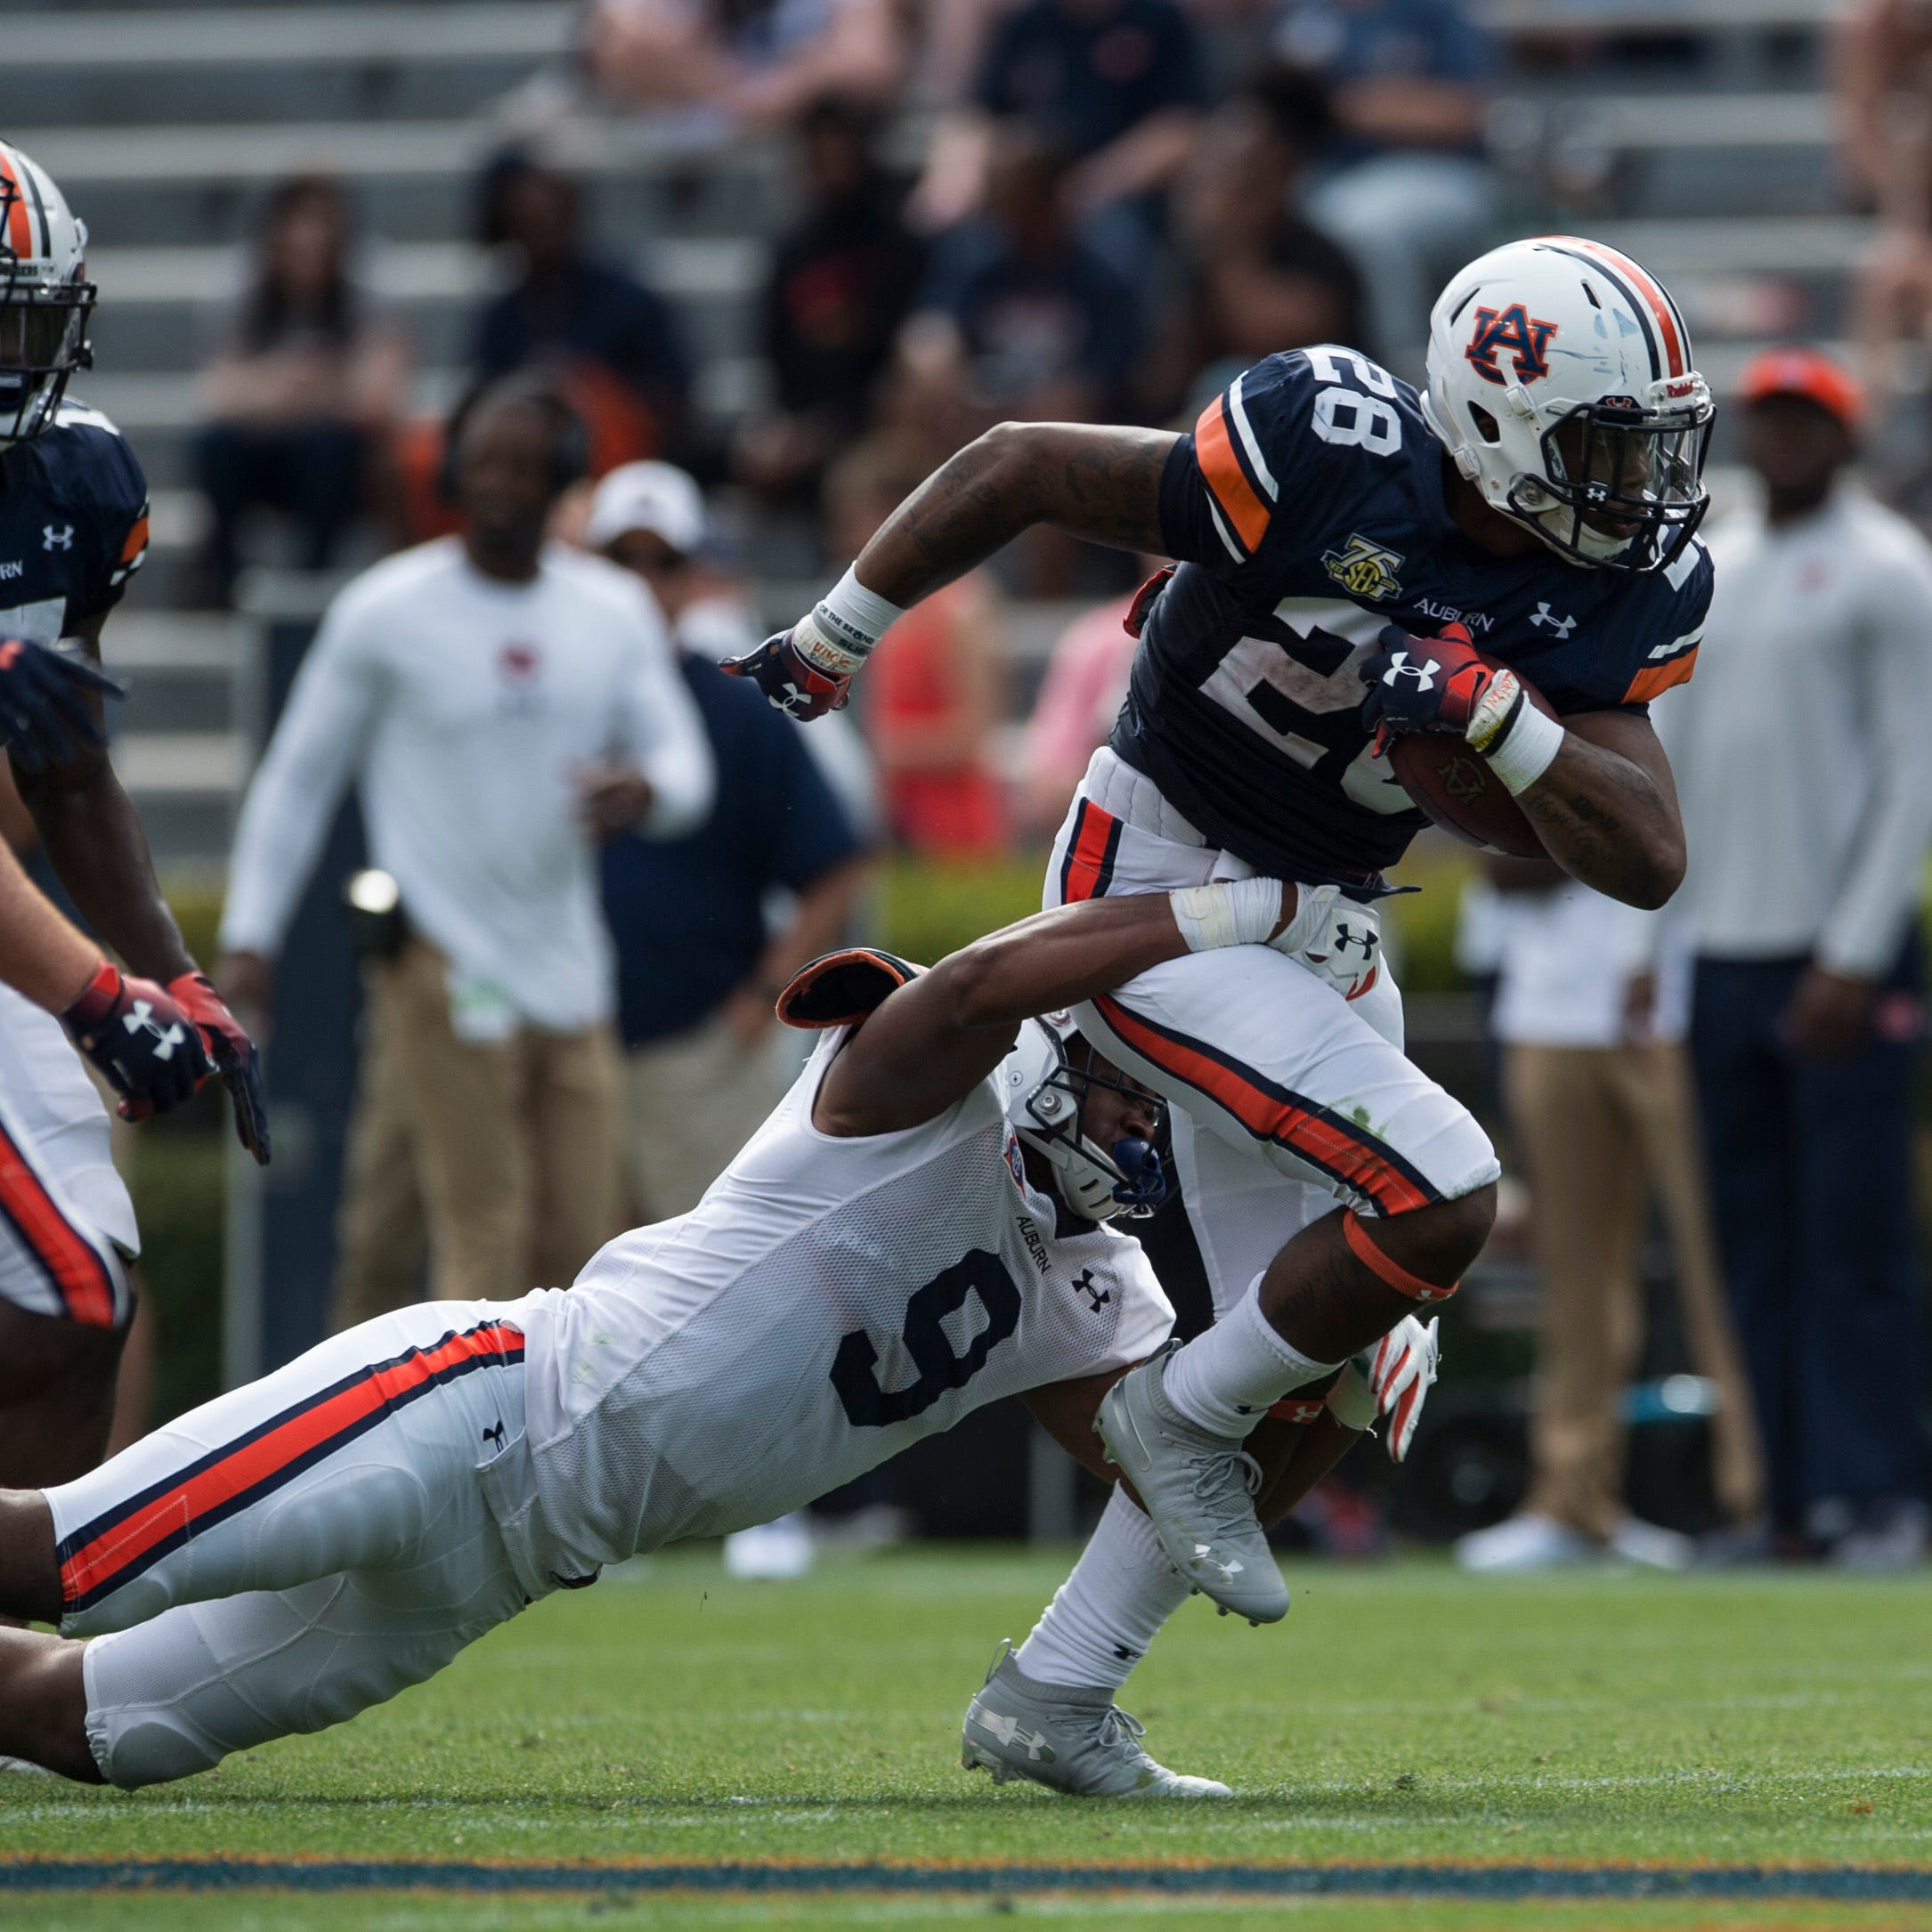 How JaTarvious Whitlow plans to improve in Year 2 as Auburn's top running back